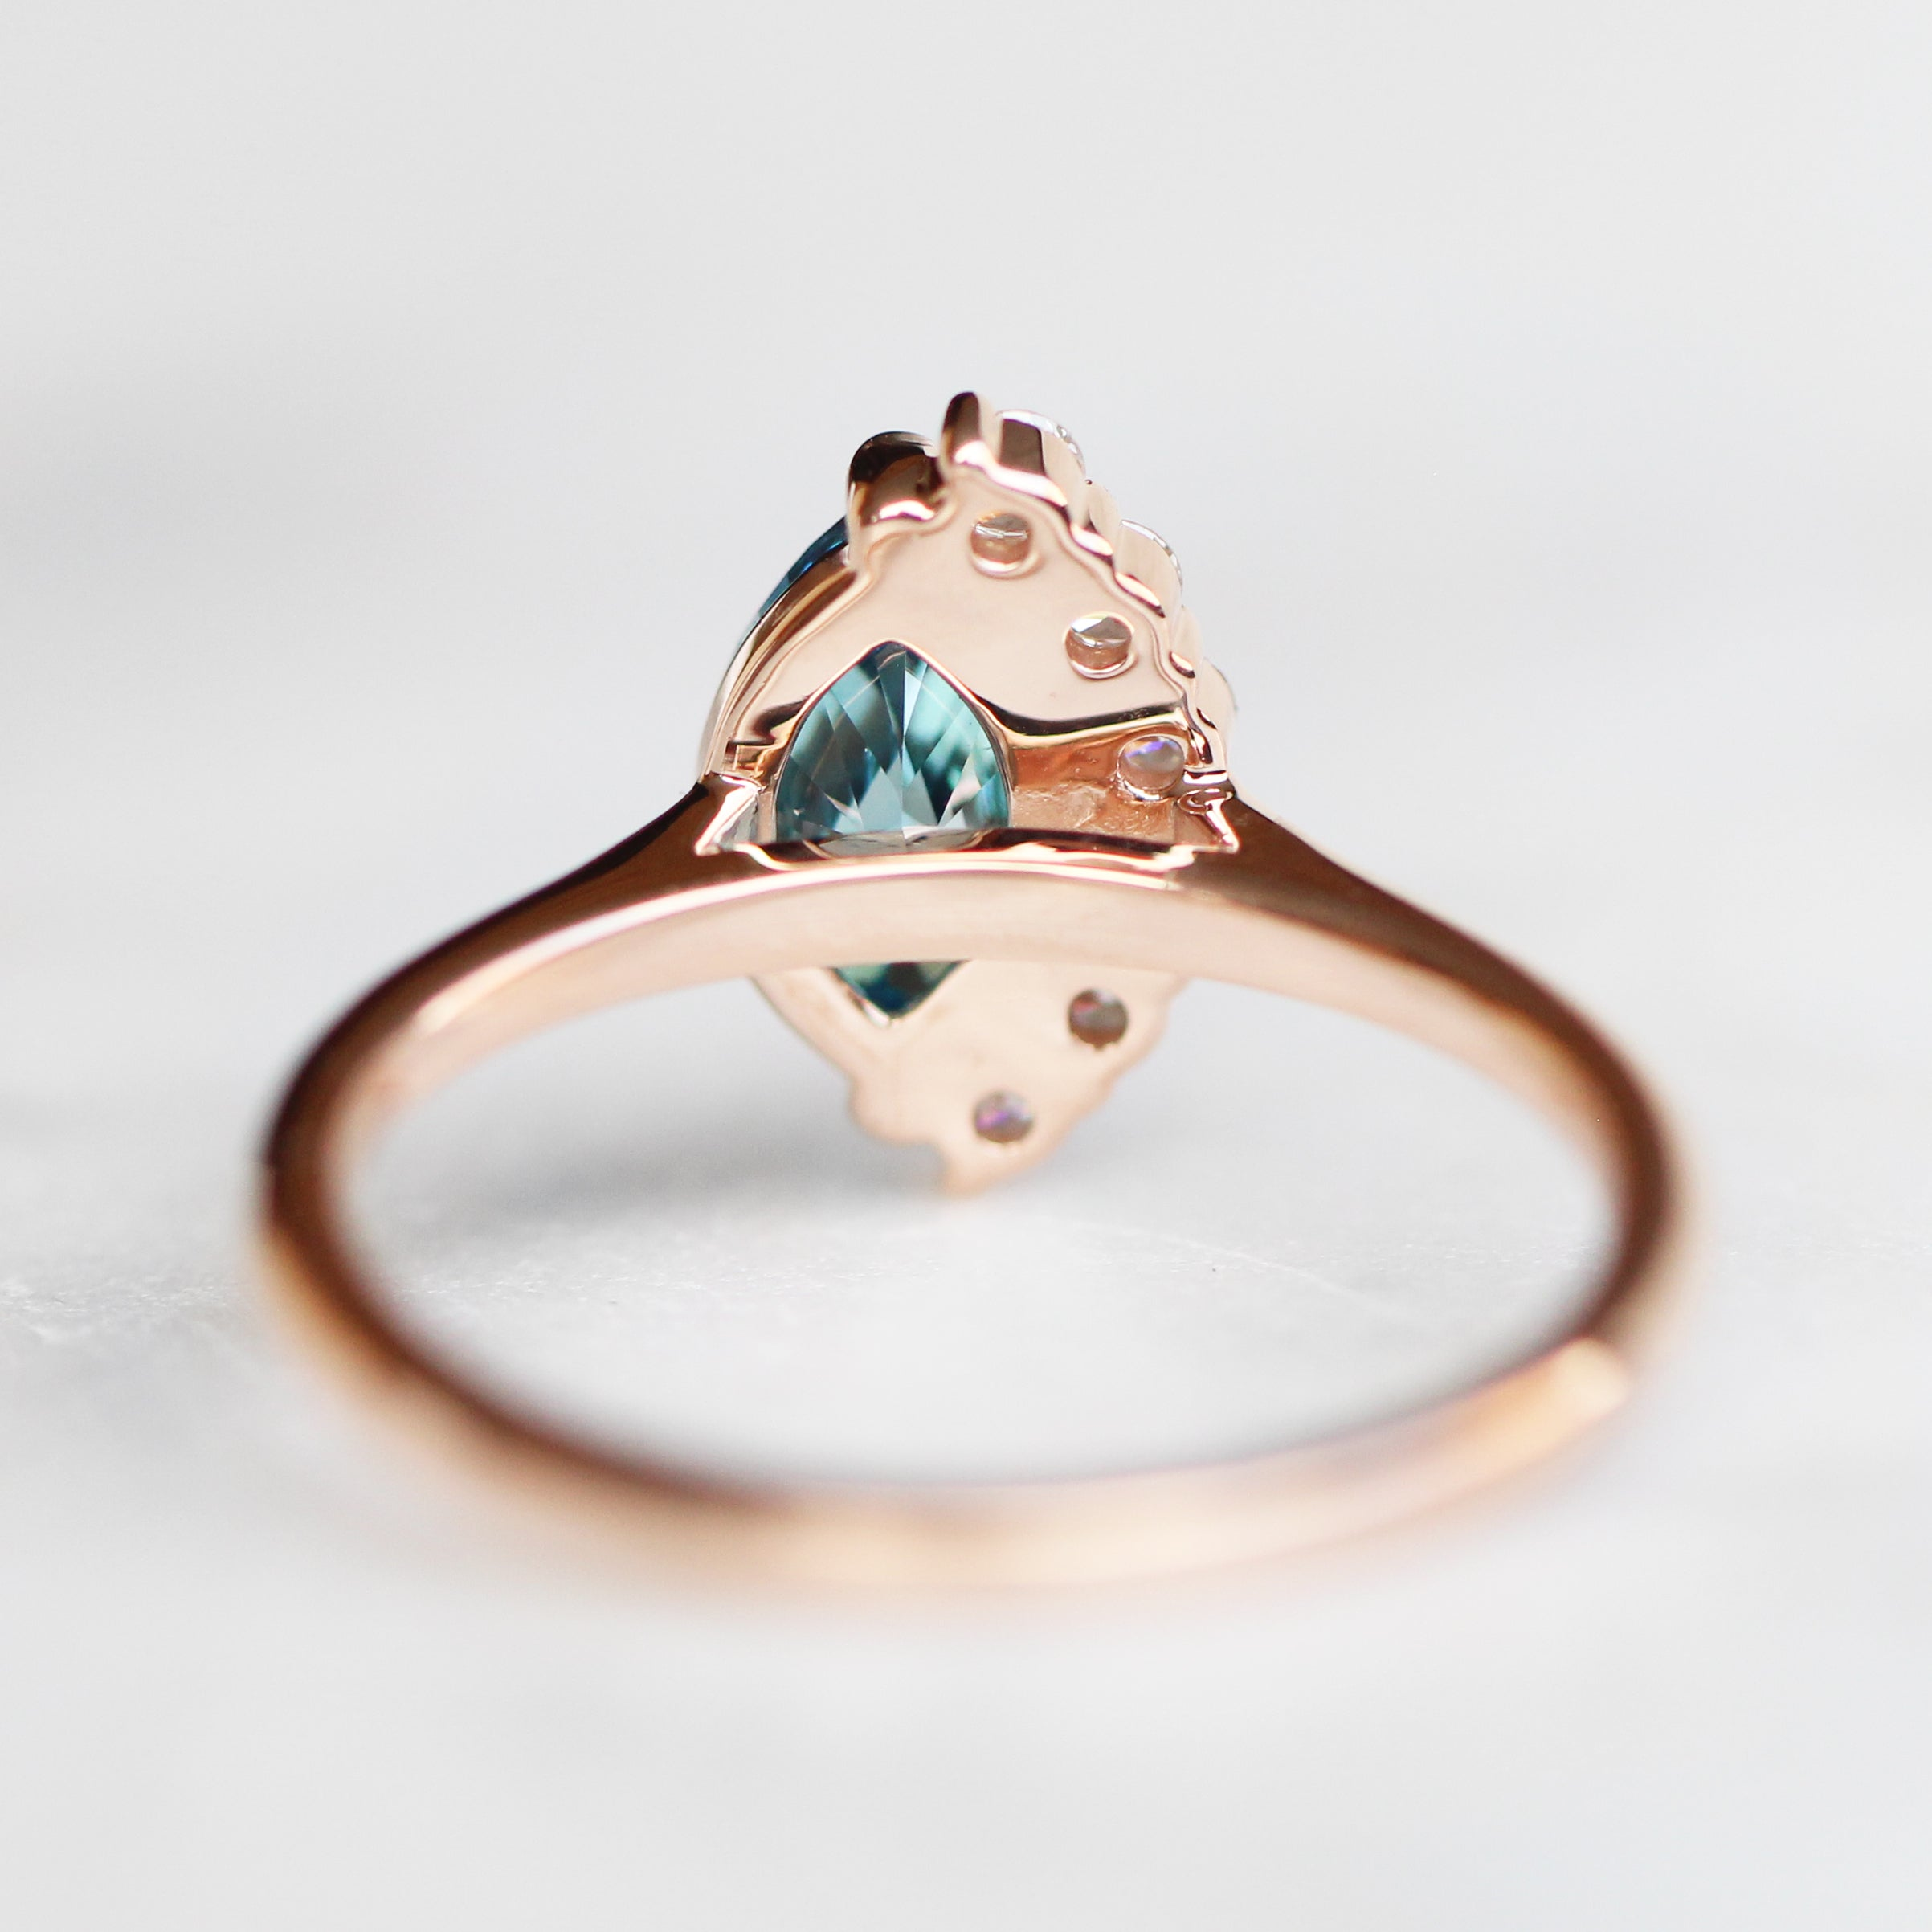 Samantha- Andrue Ring with 1.23ct Brilliant Cut Marquise Diamond in 14k Rose Gold- Ready to Size and Ship - Celestial Diamonds ® by Midwinter Co.